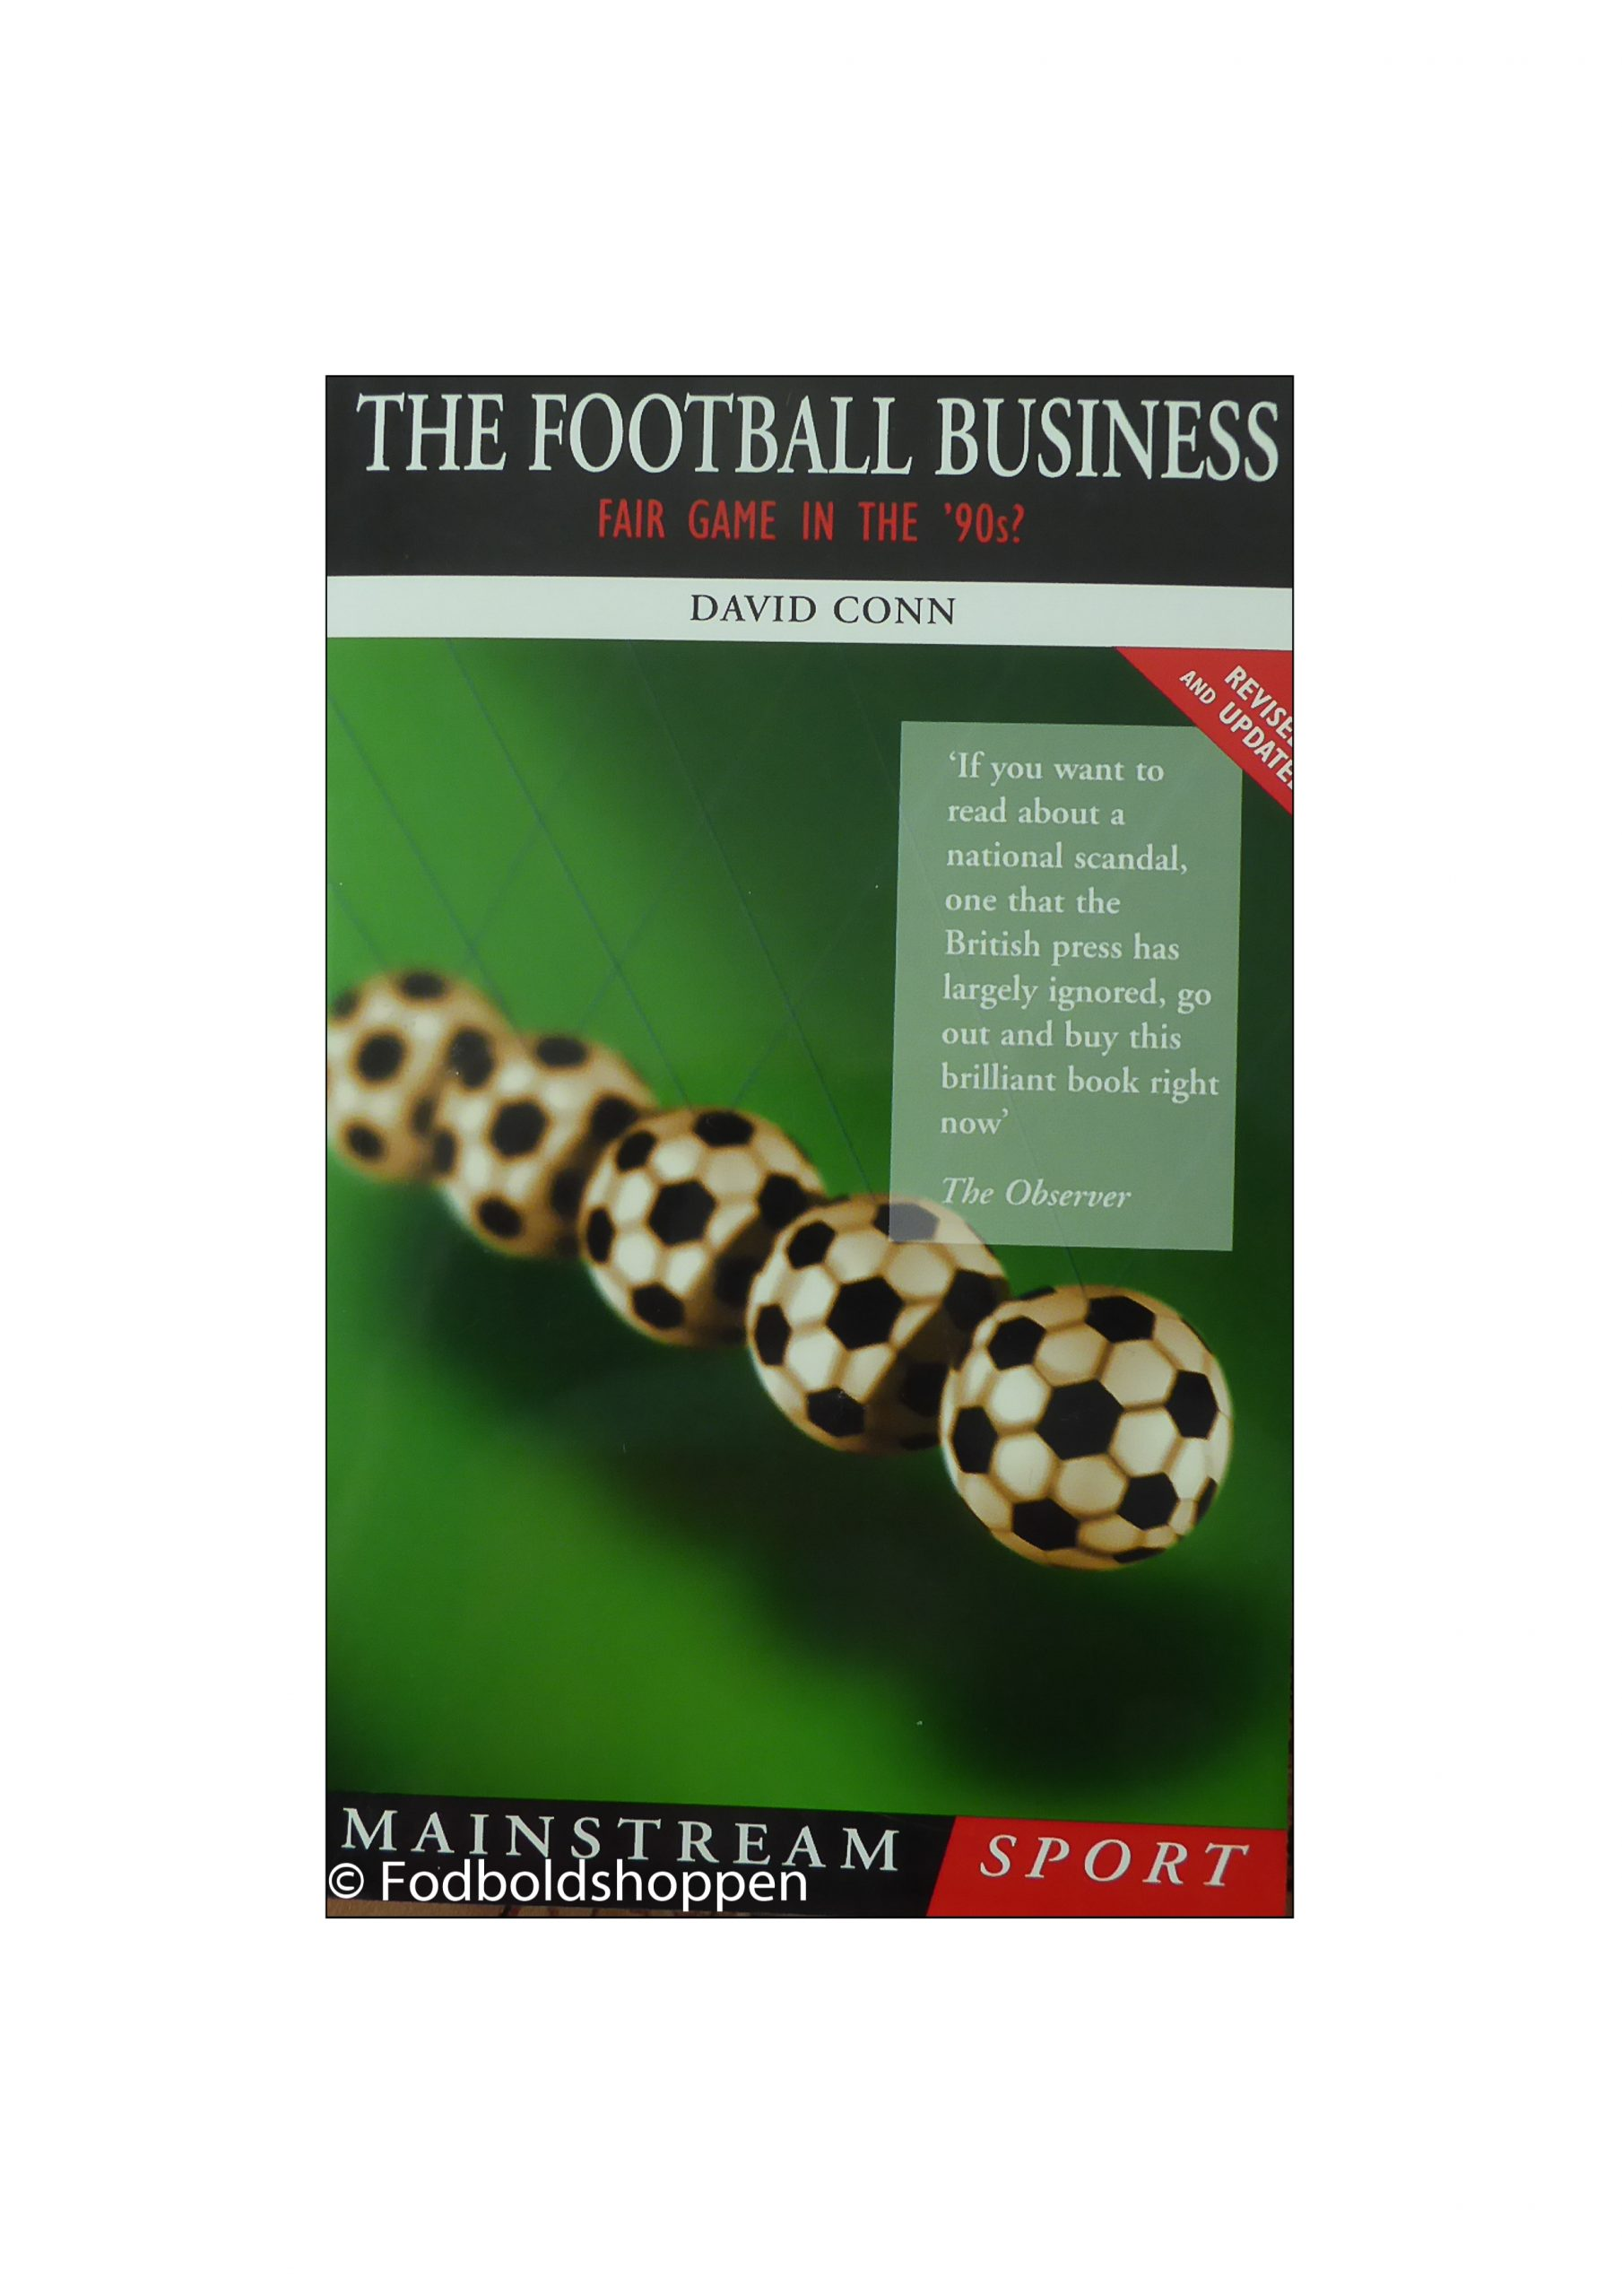 The Football Business - Fair game in the 90s